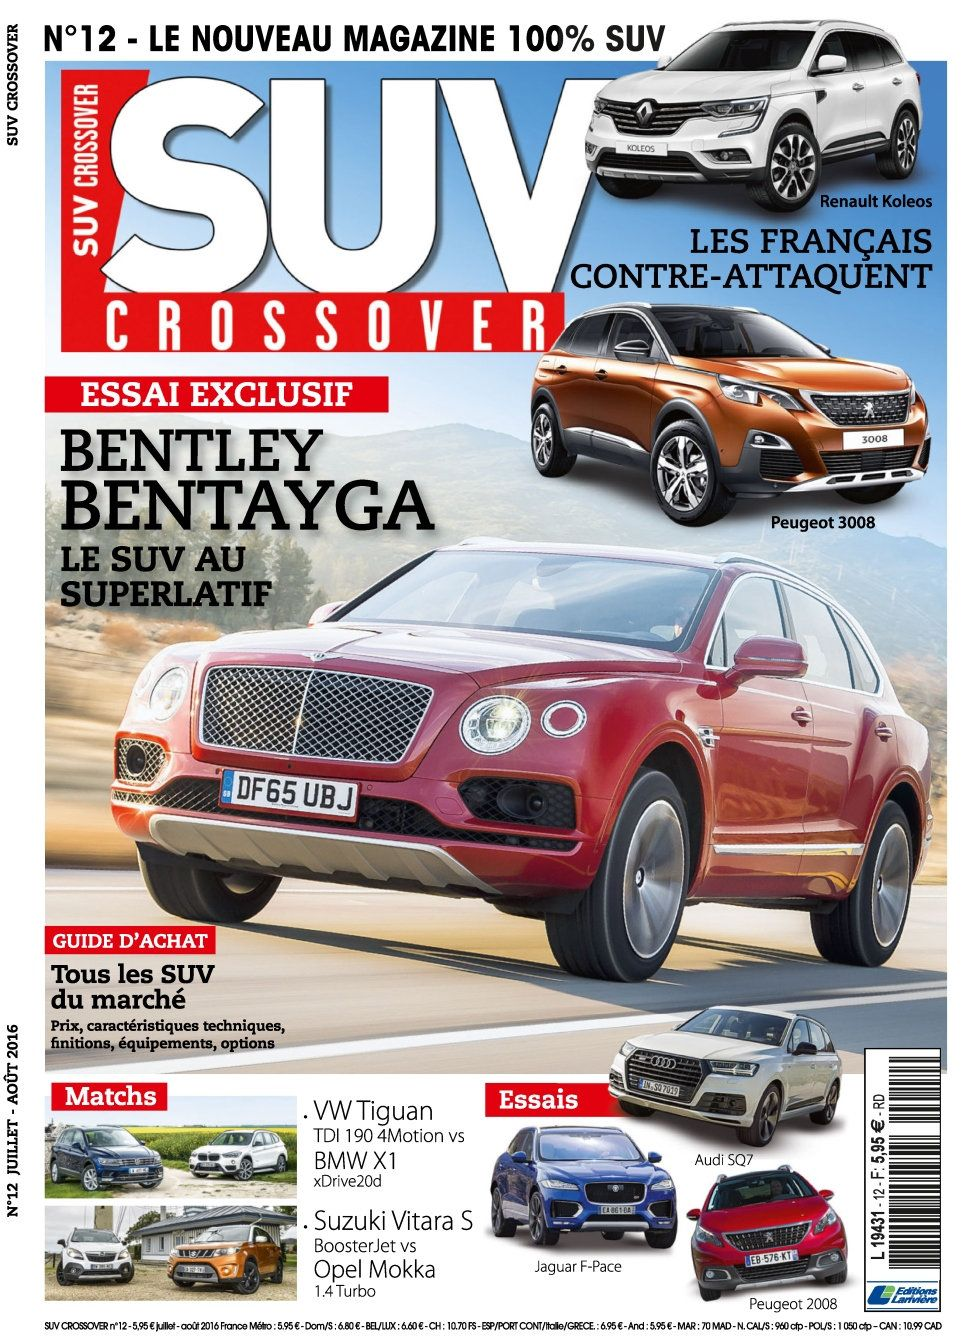 Suv Crossover 12 - Juillet/Aout